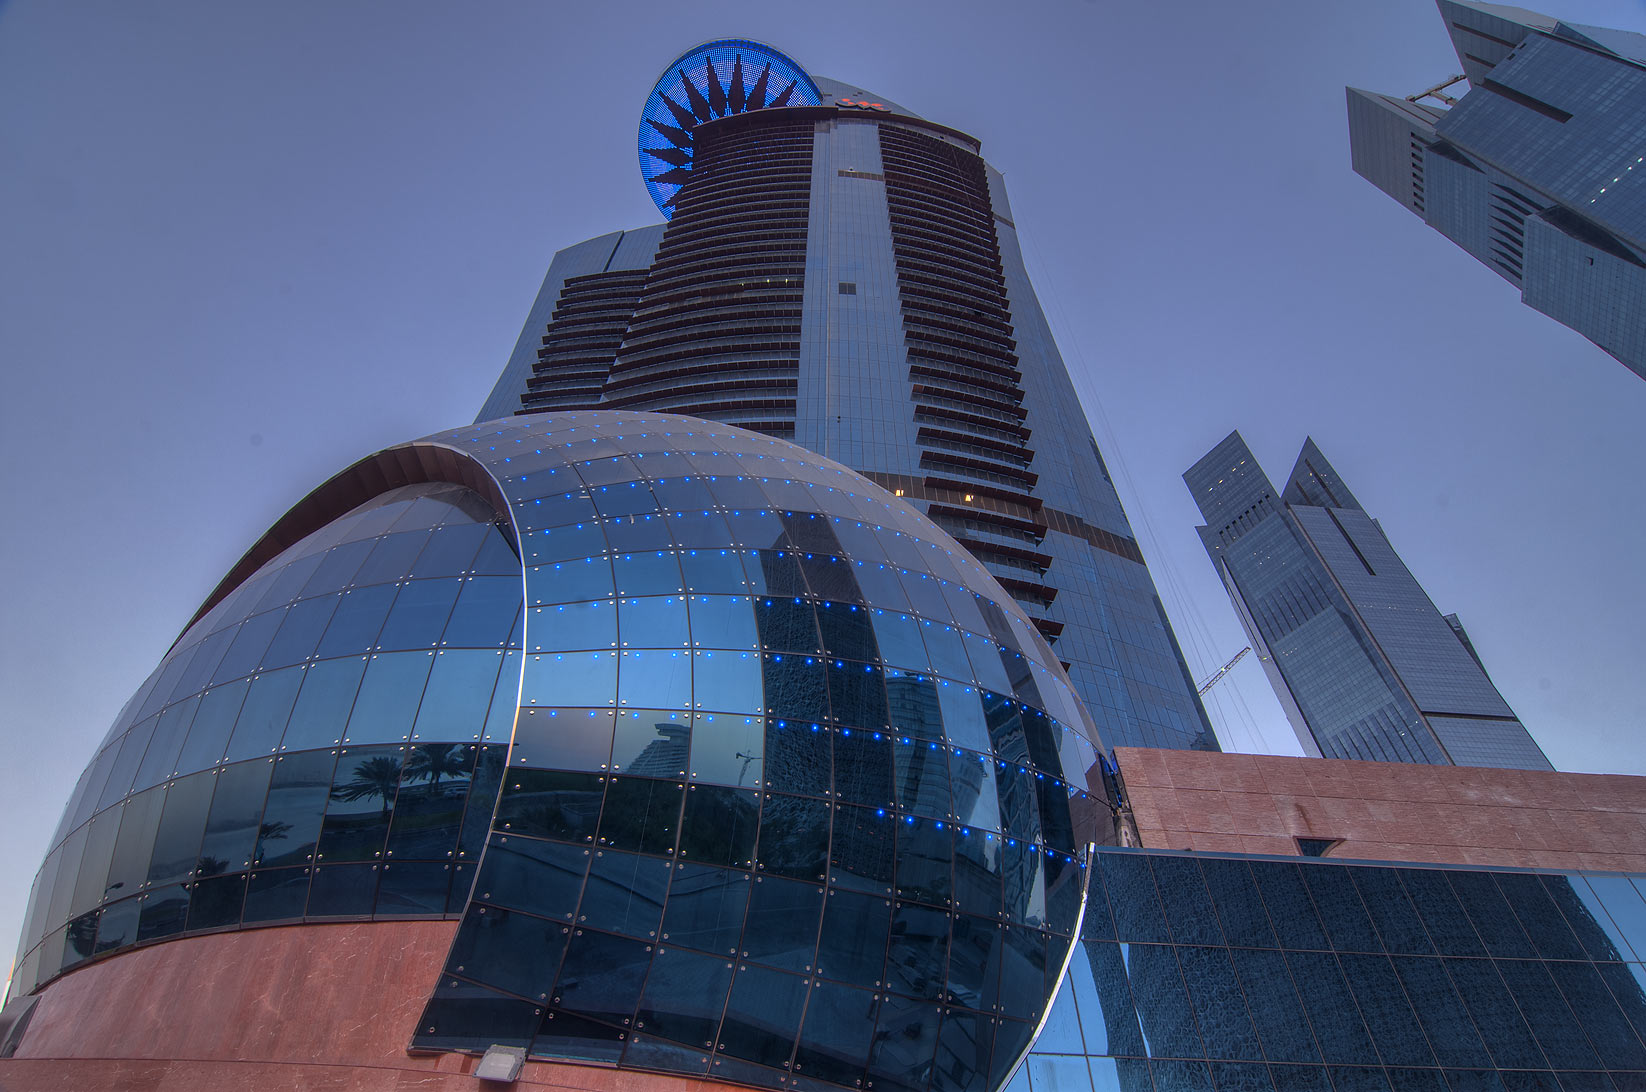 Spherical structure of WTC Tower in West Bay near Corniche. Doha, Qatar